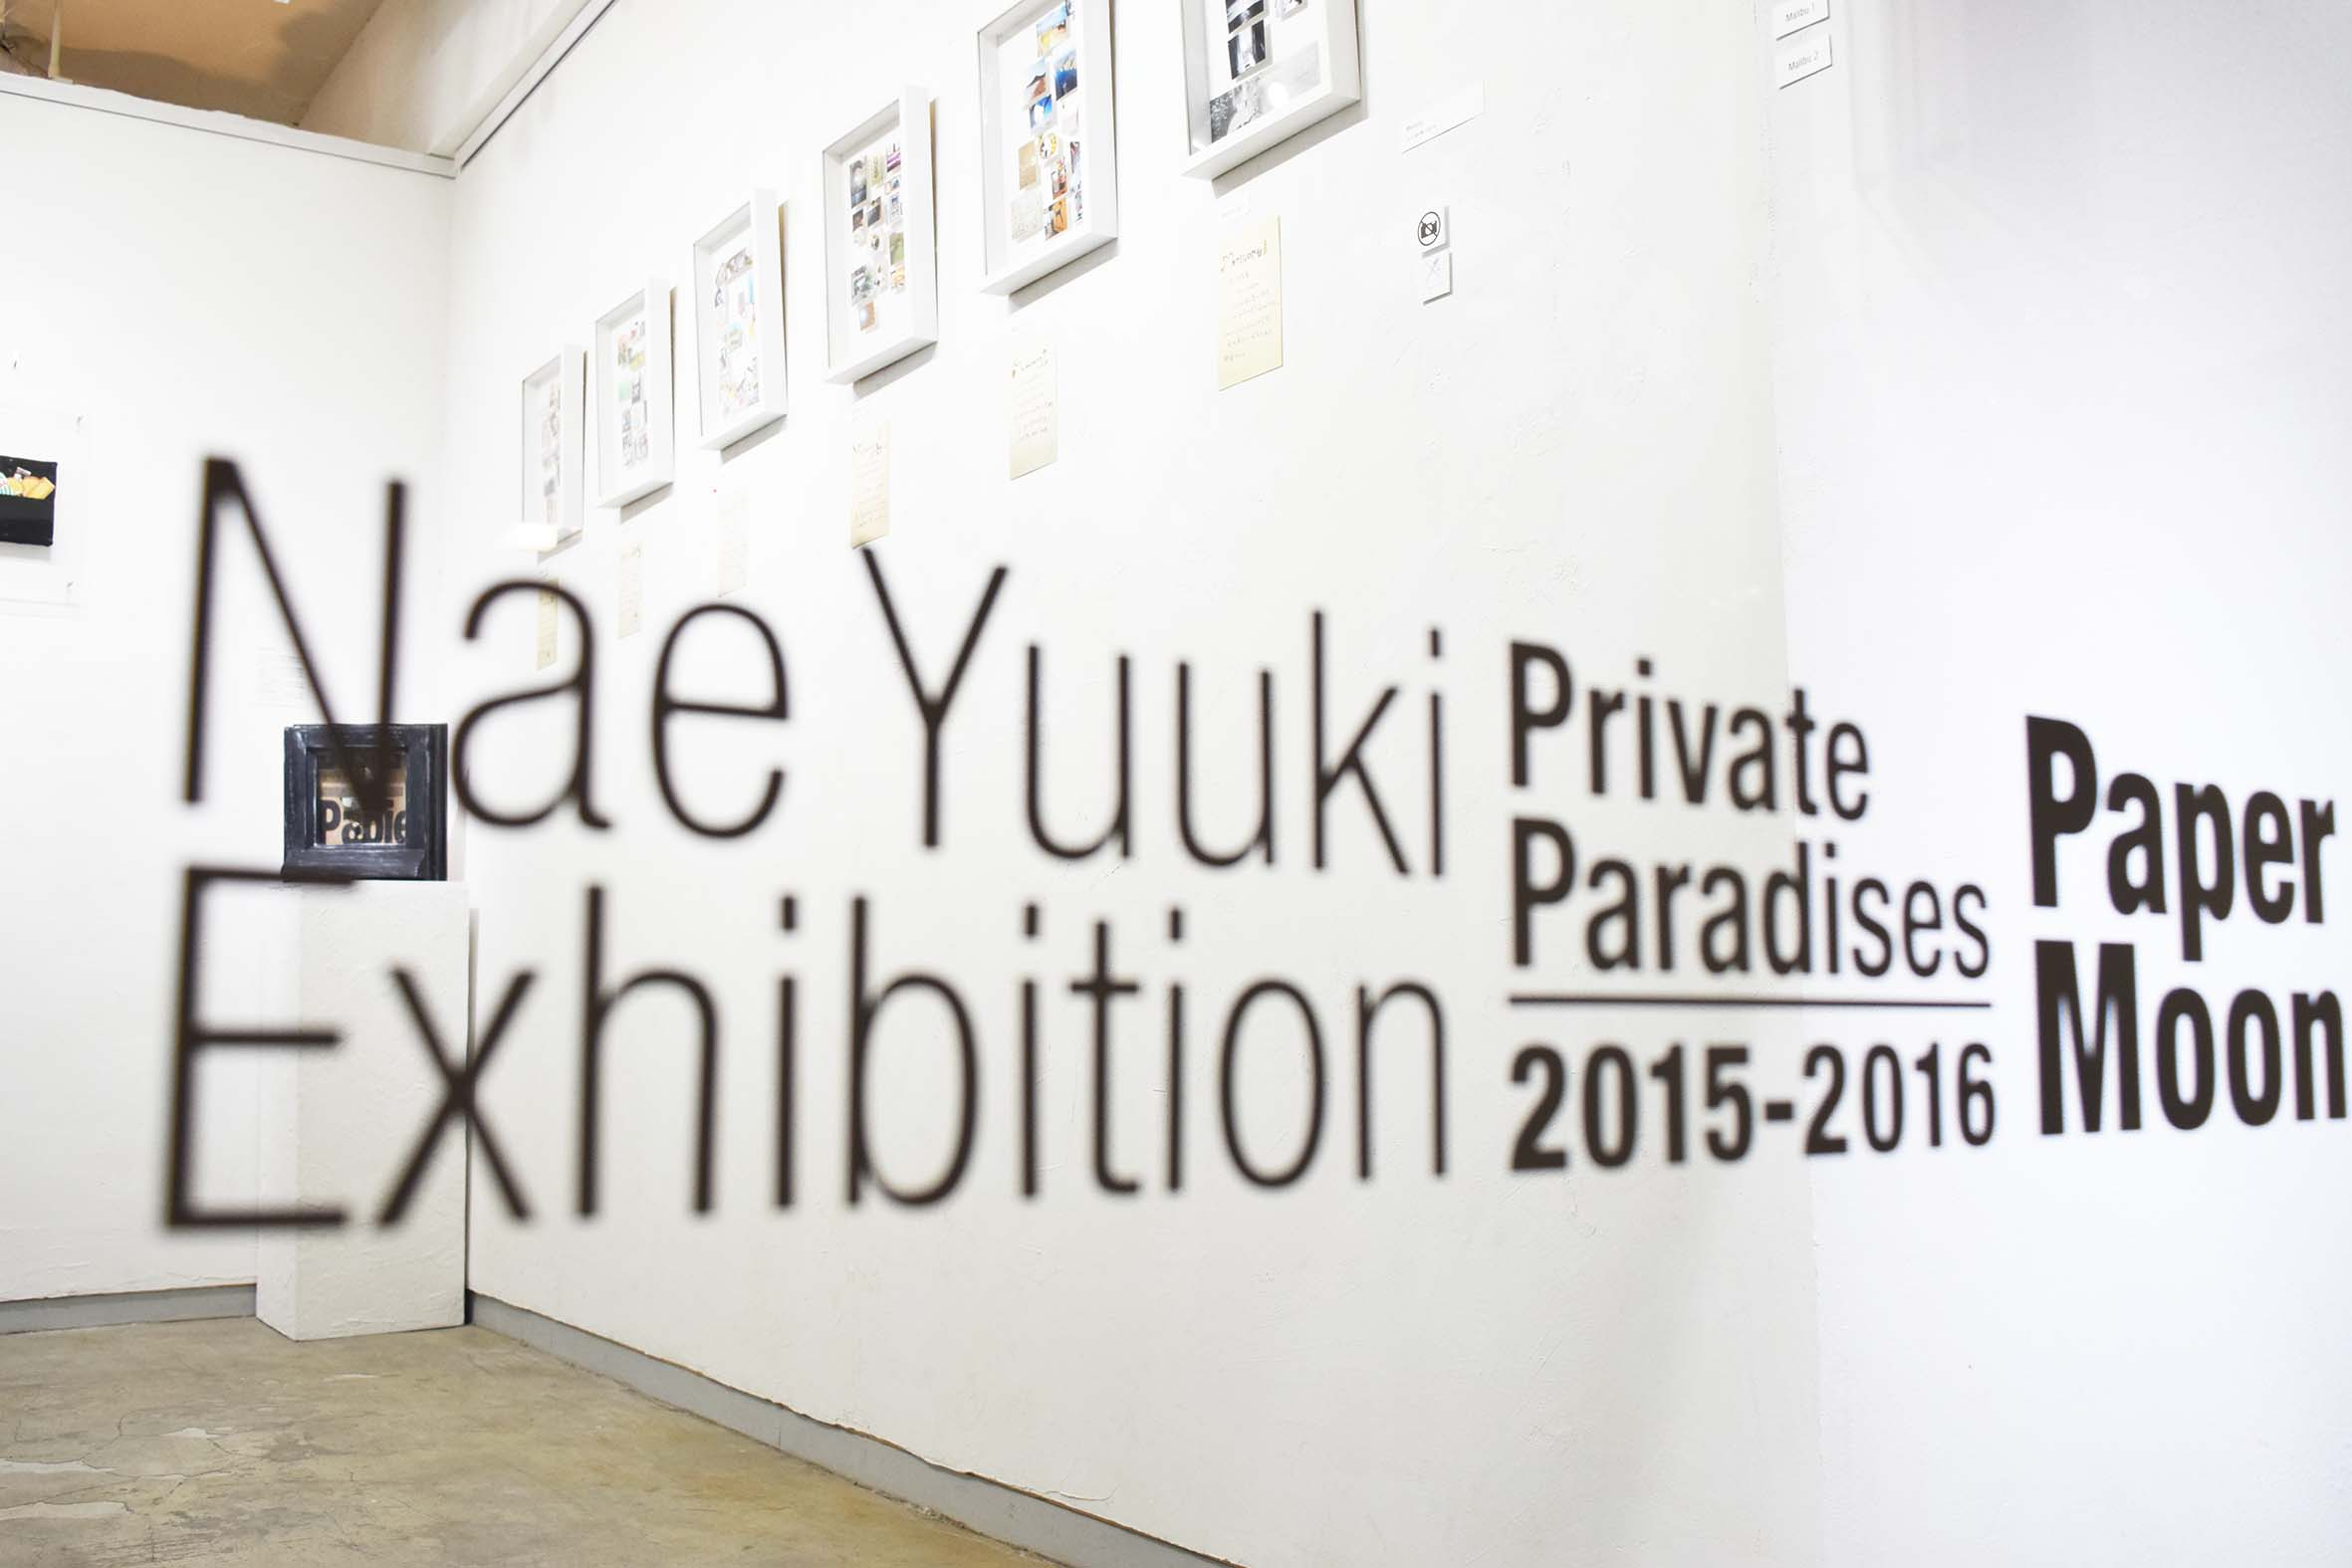 Nae Yuuki Exhibition Private Paradises 2015-2016 Paper Moon、2016'version@終了いたしました_e0272050_18431395.jpg